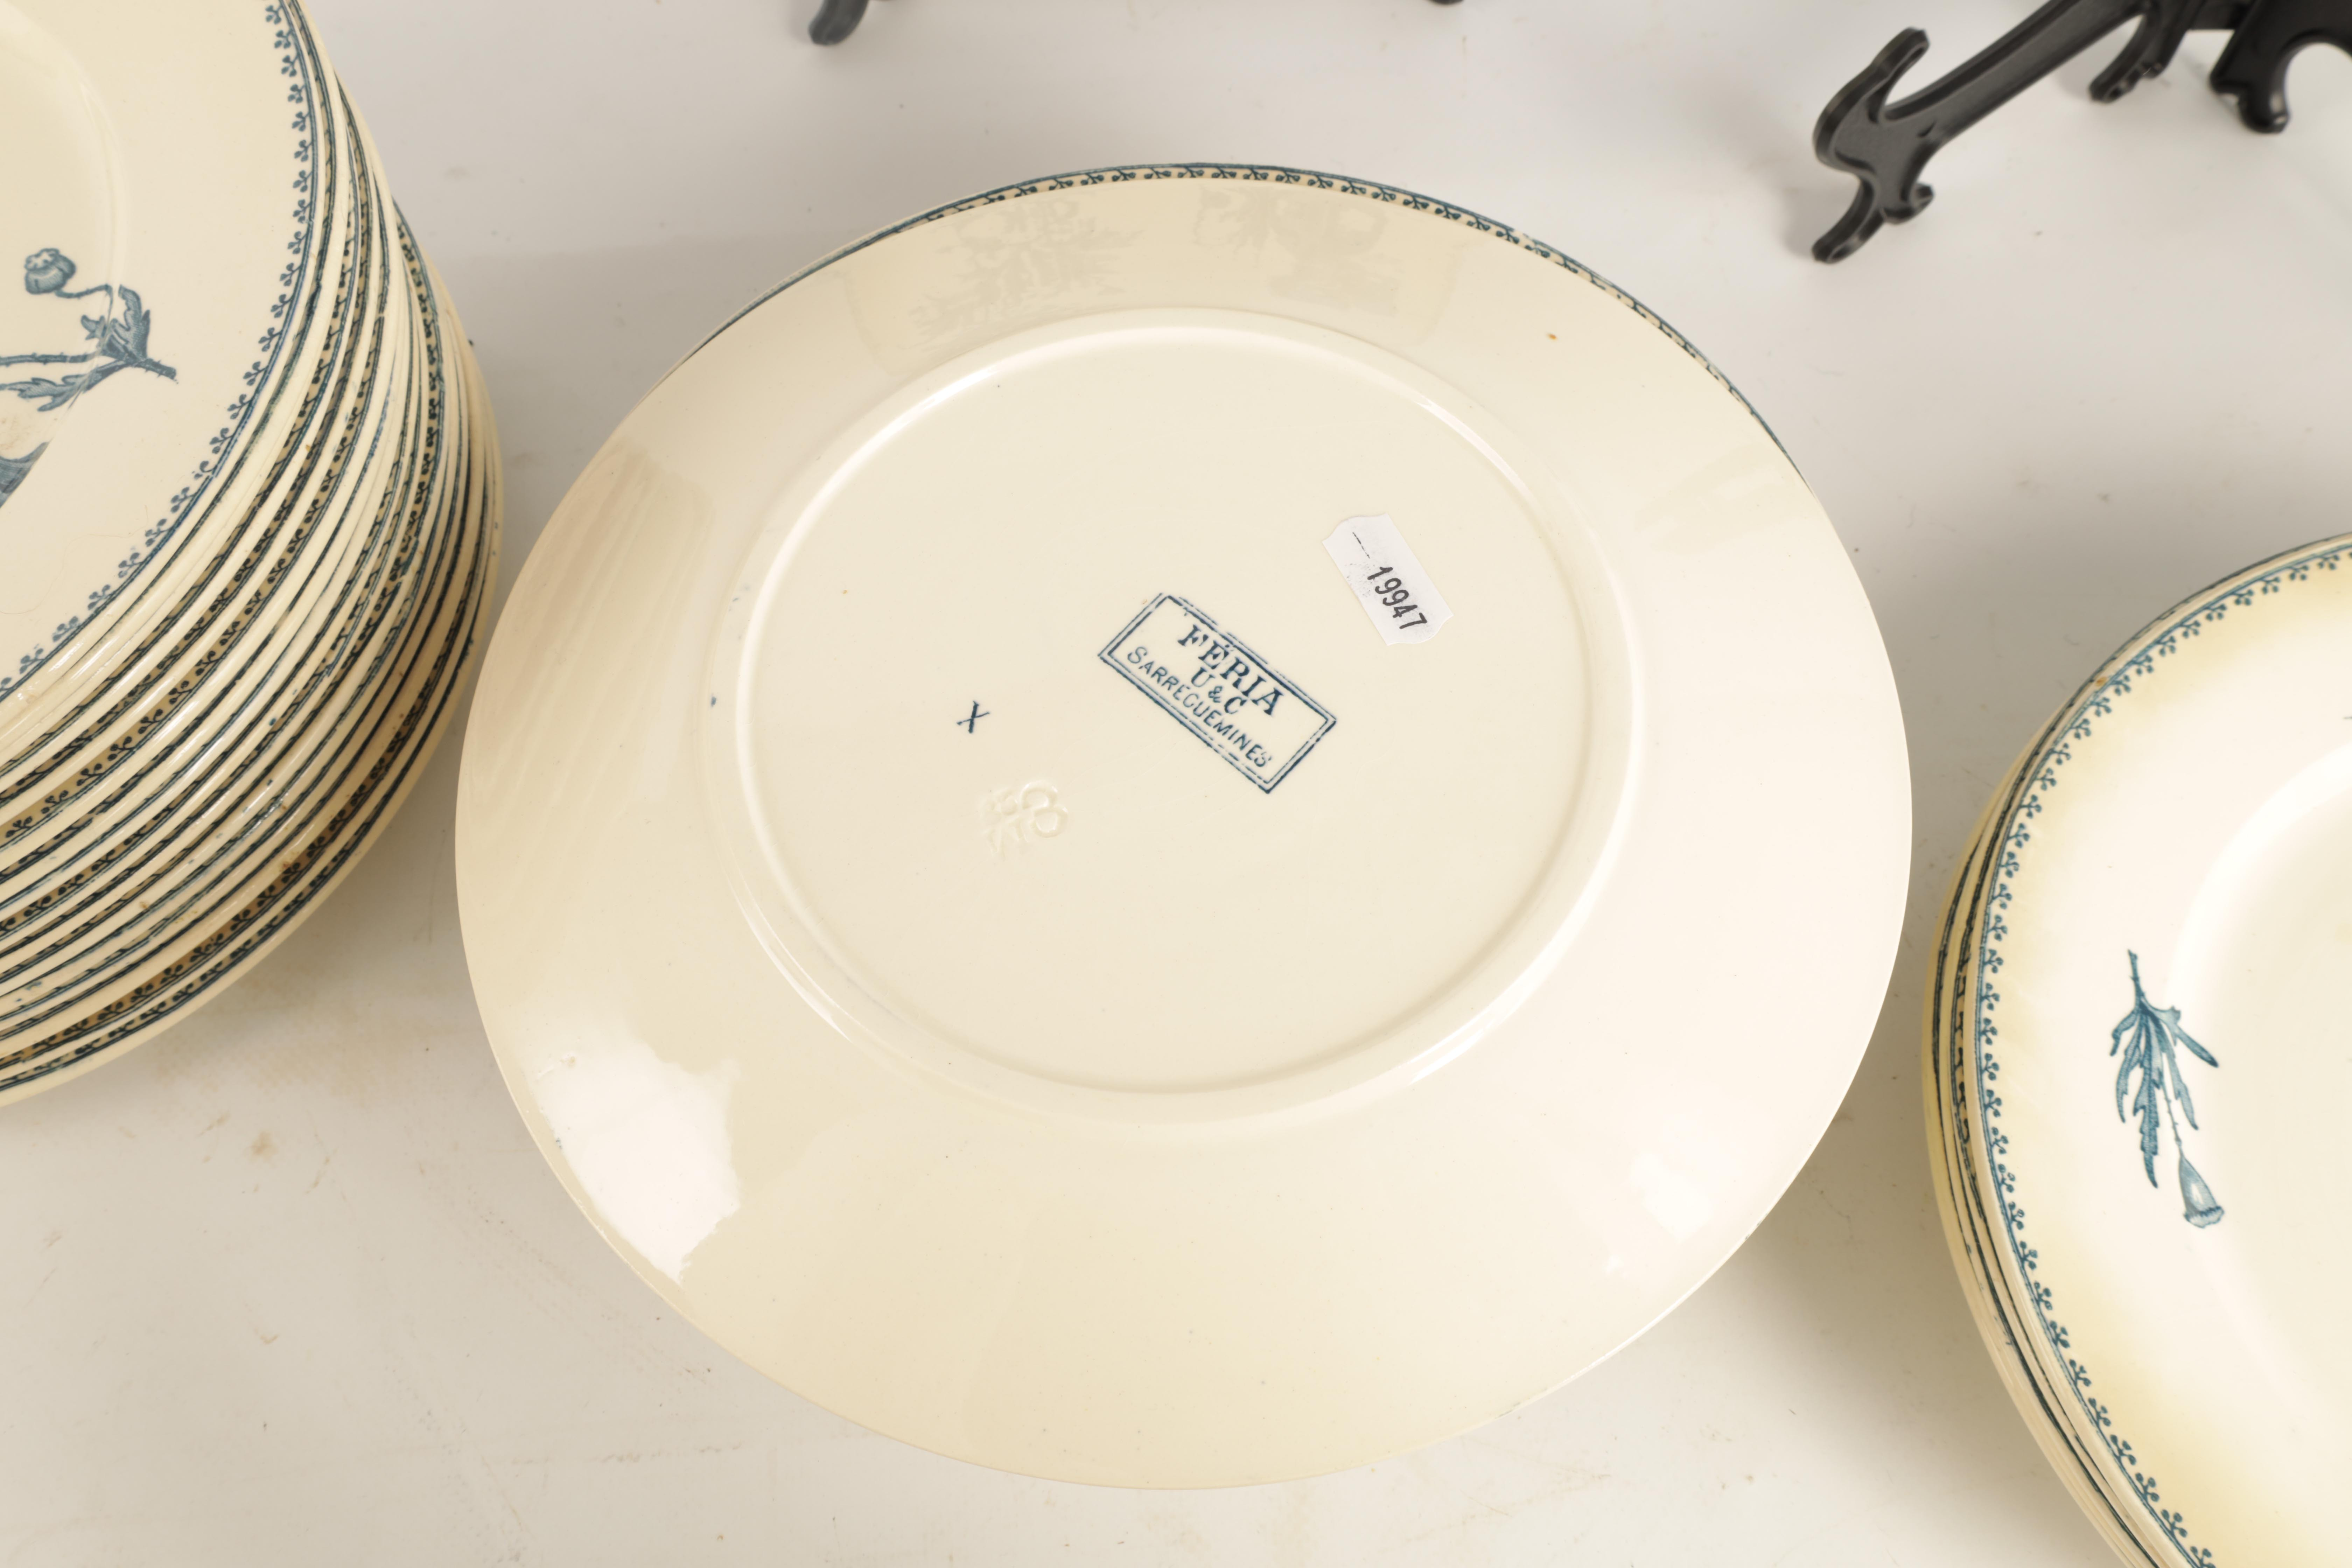 A SET OF 31 20TH CENTURY FRENCH FAIENCE U&C SARREGUEMINES FERIA DINNER PLATES with flower spray - Image 4 of 5